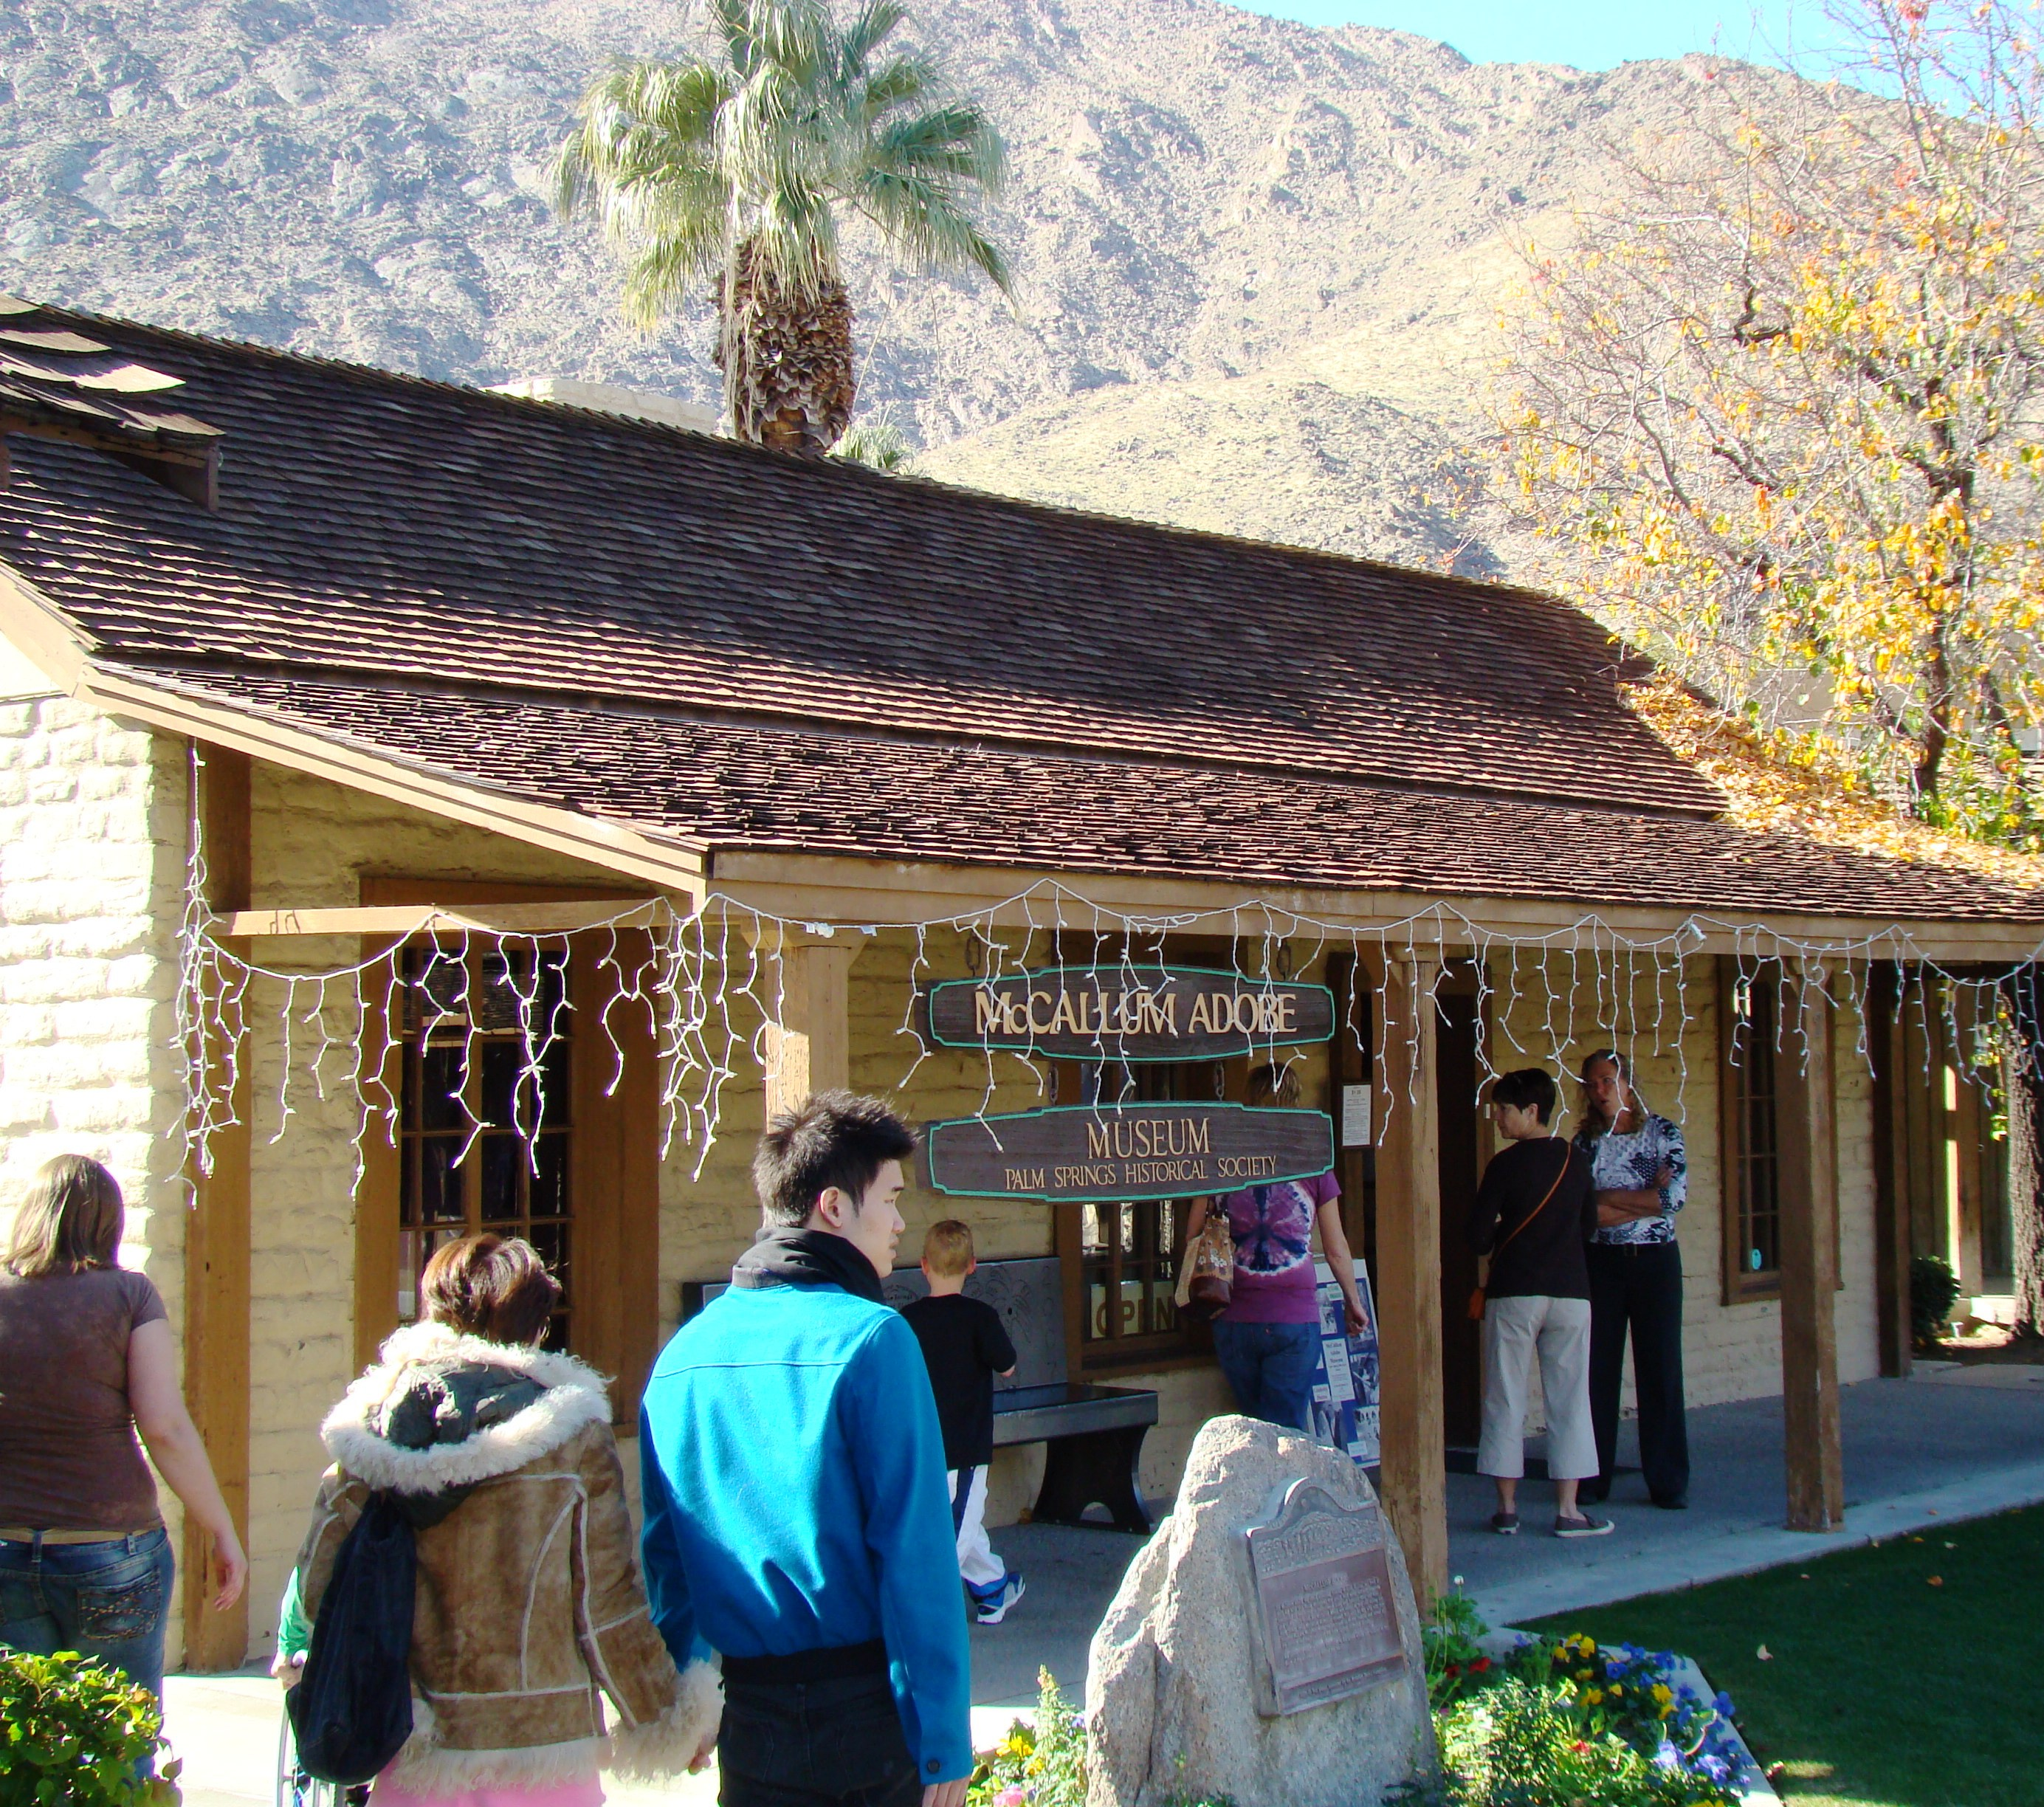 The McCallum Adobe (1884) is one of several early historic buildings housing the Palm Springs Historical Society.